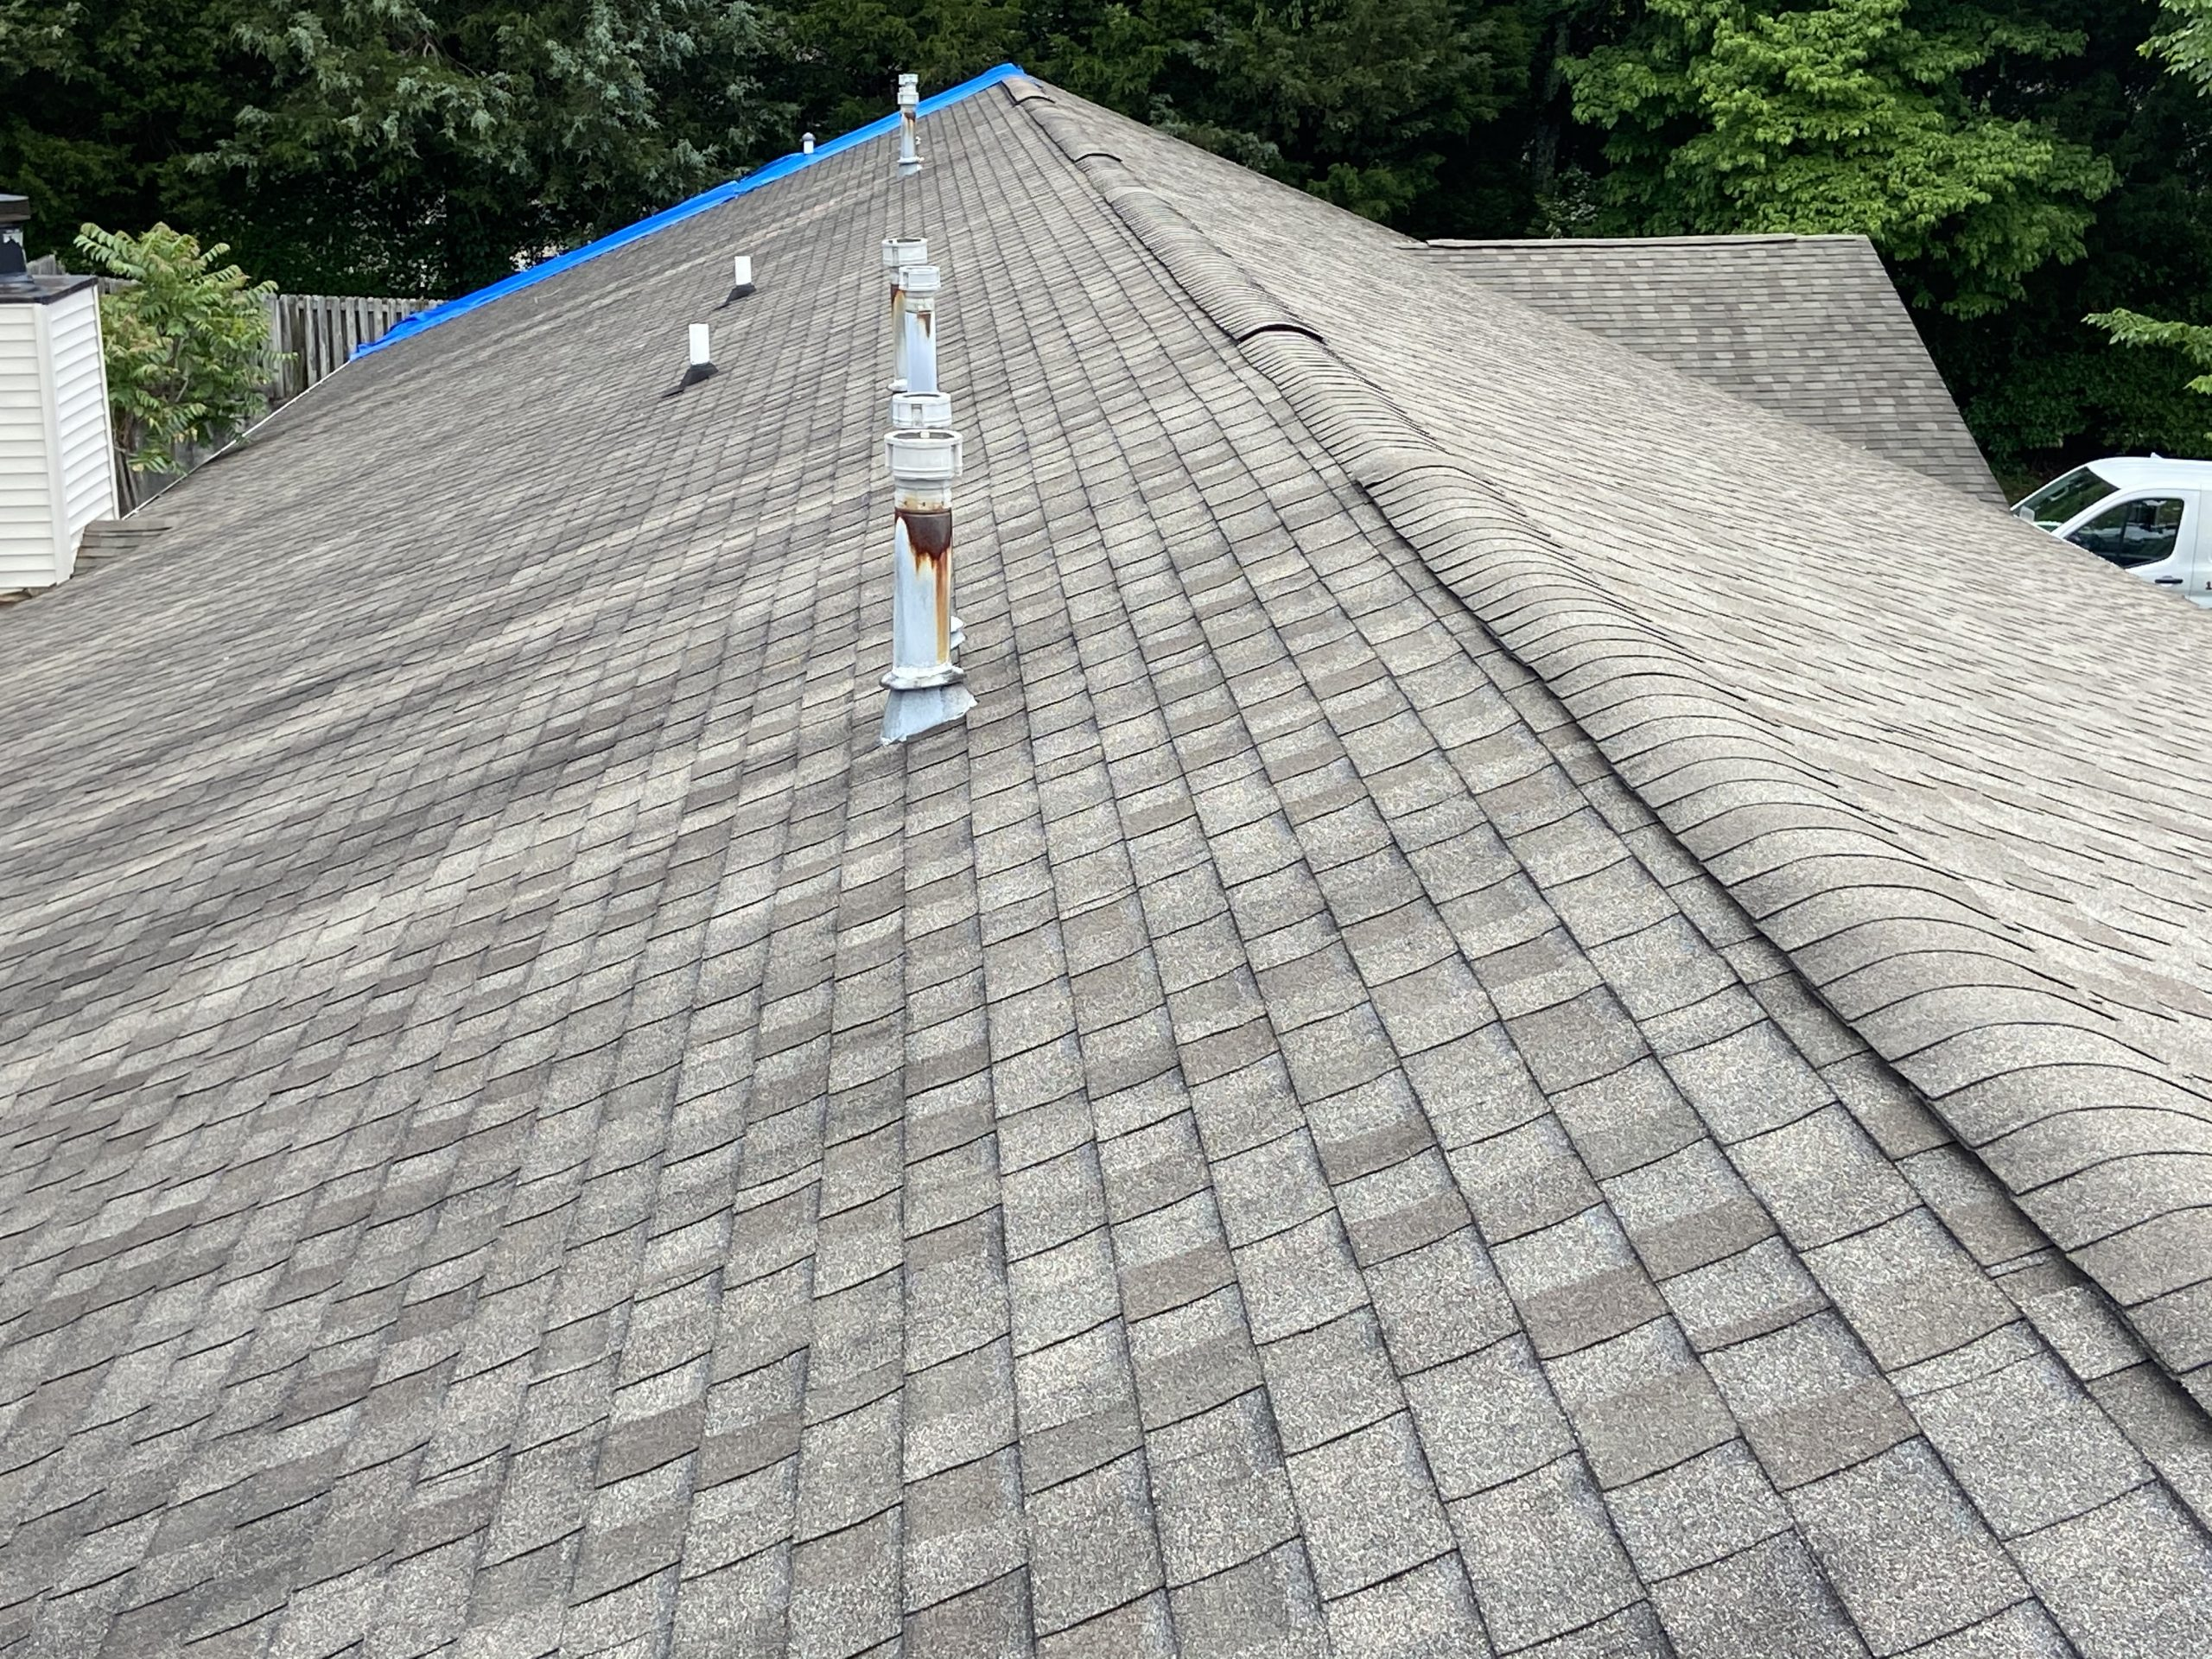 This is an image of a roof at the ridge showing the roof is in bad condition.